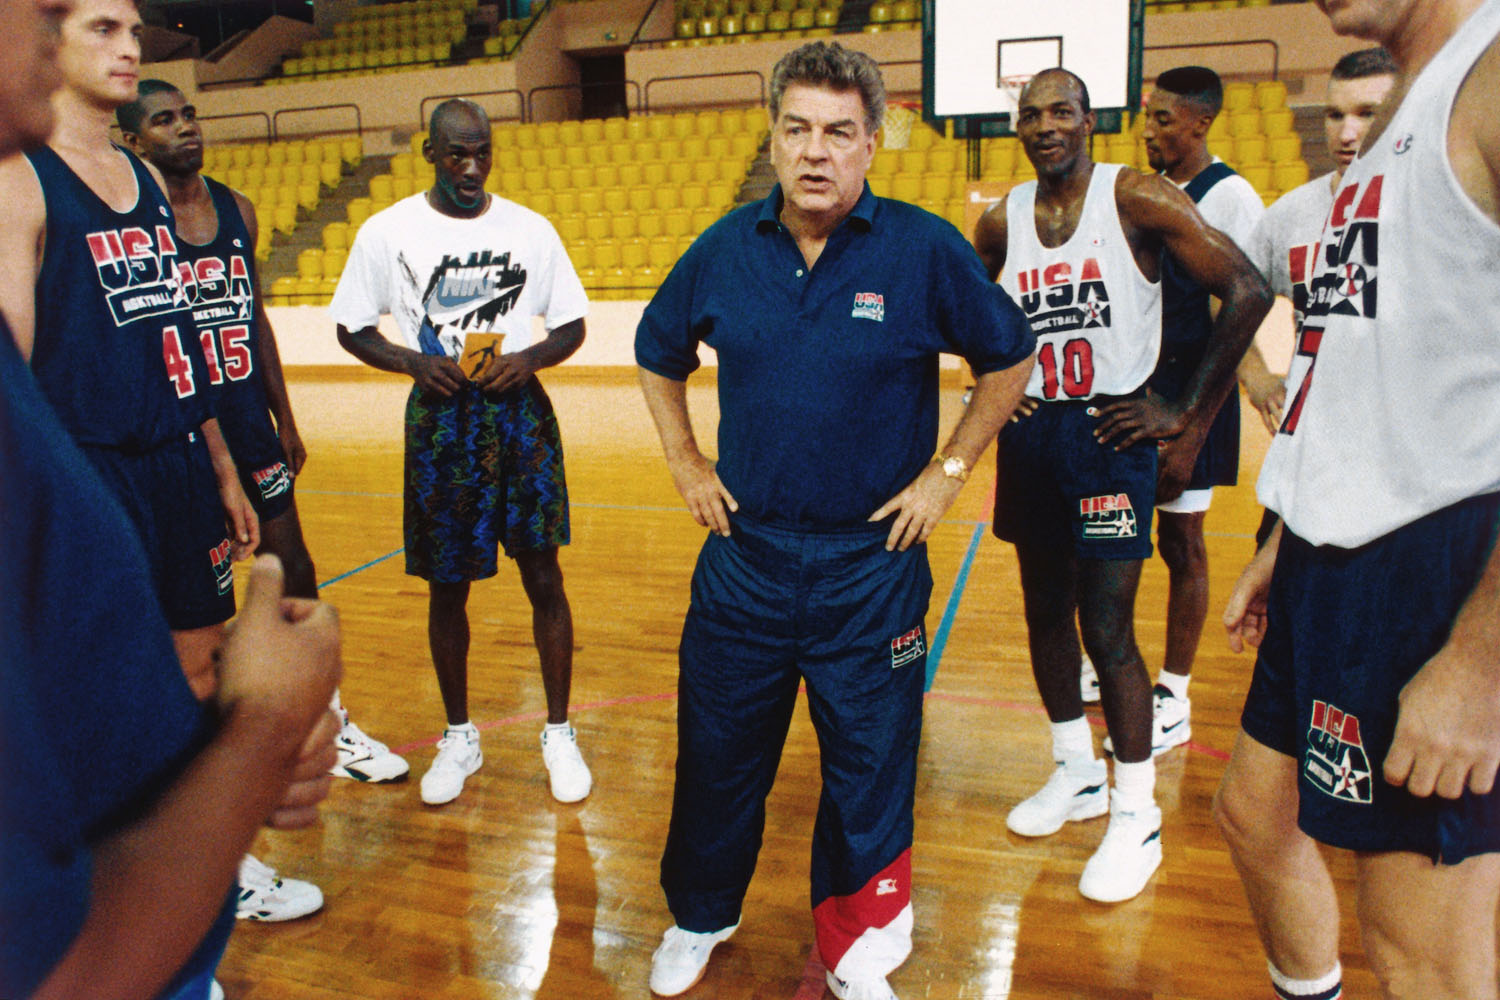 United States National Team head coach Chuck Daly talks to his team during a practice in June 1992 in La Jolla, California.